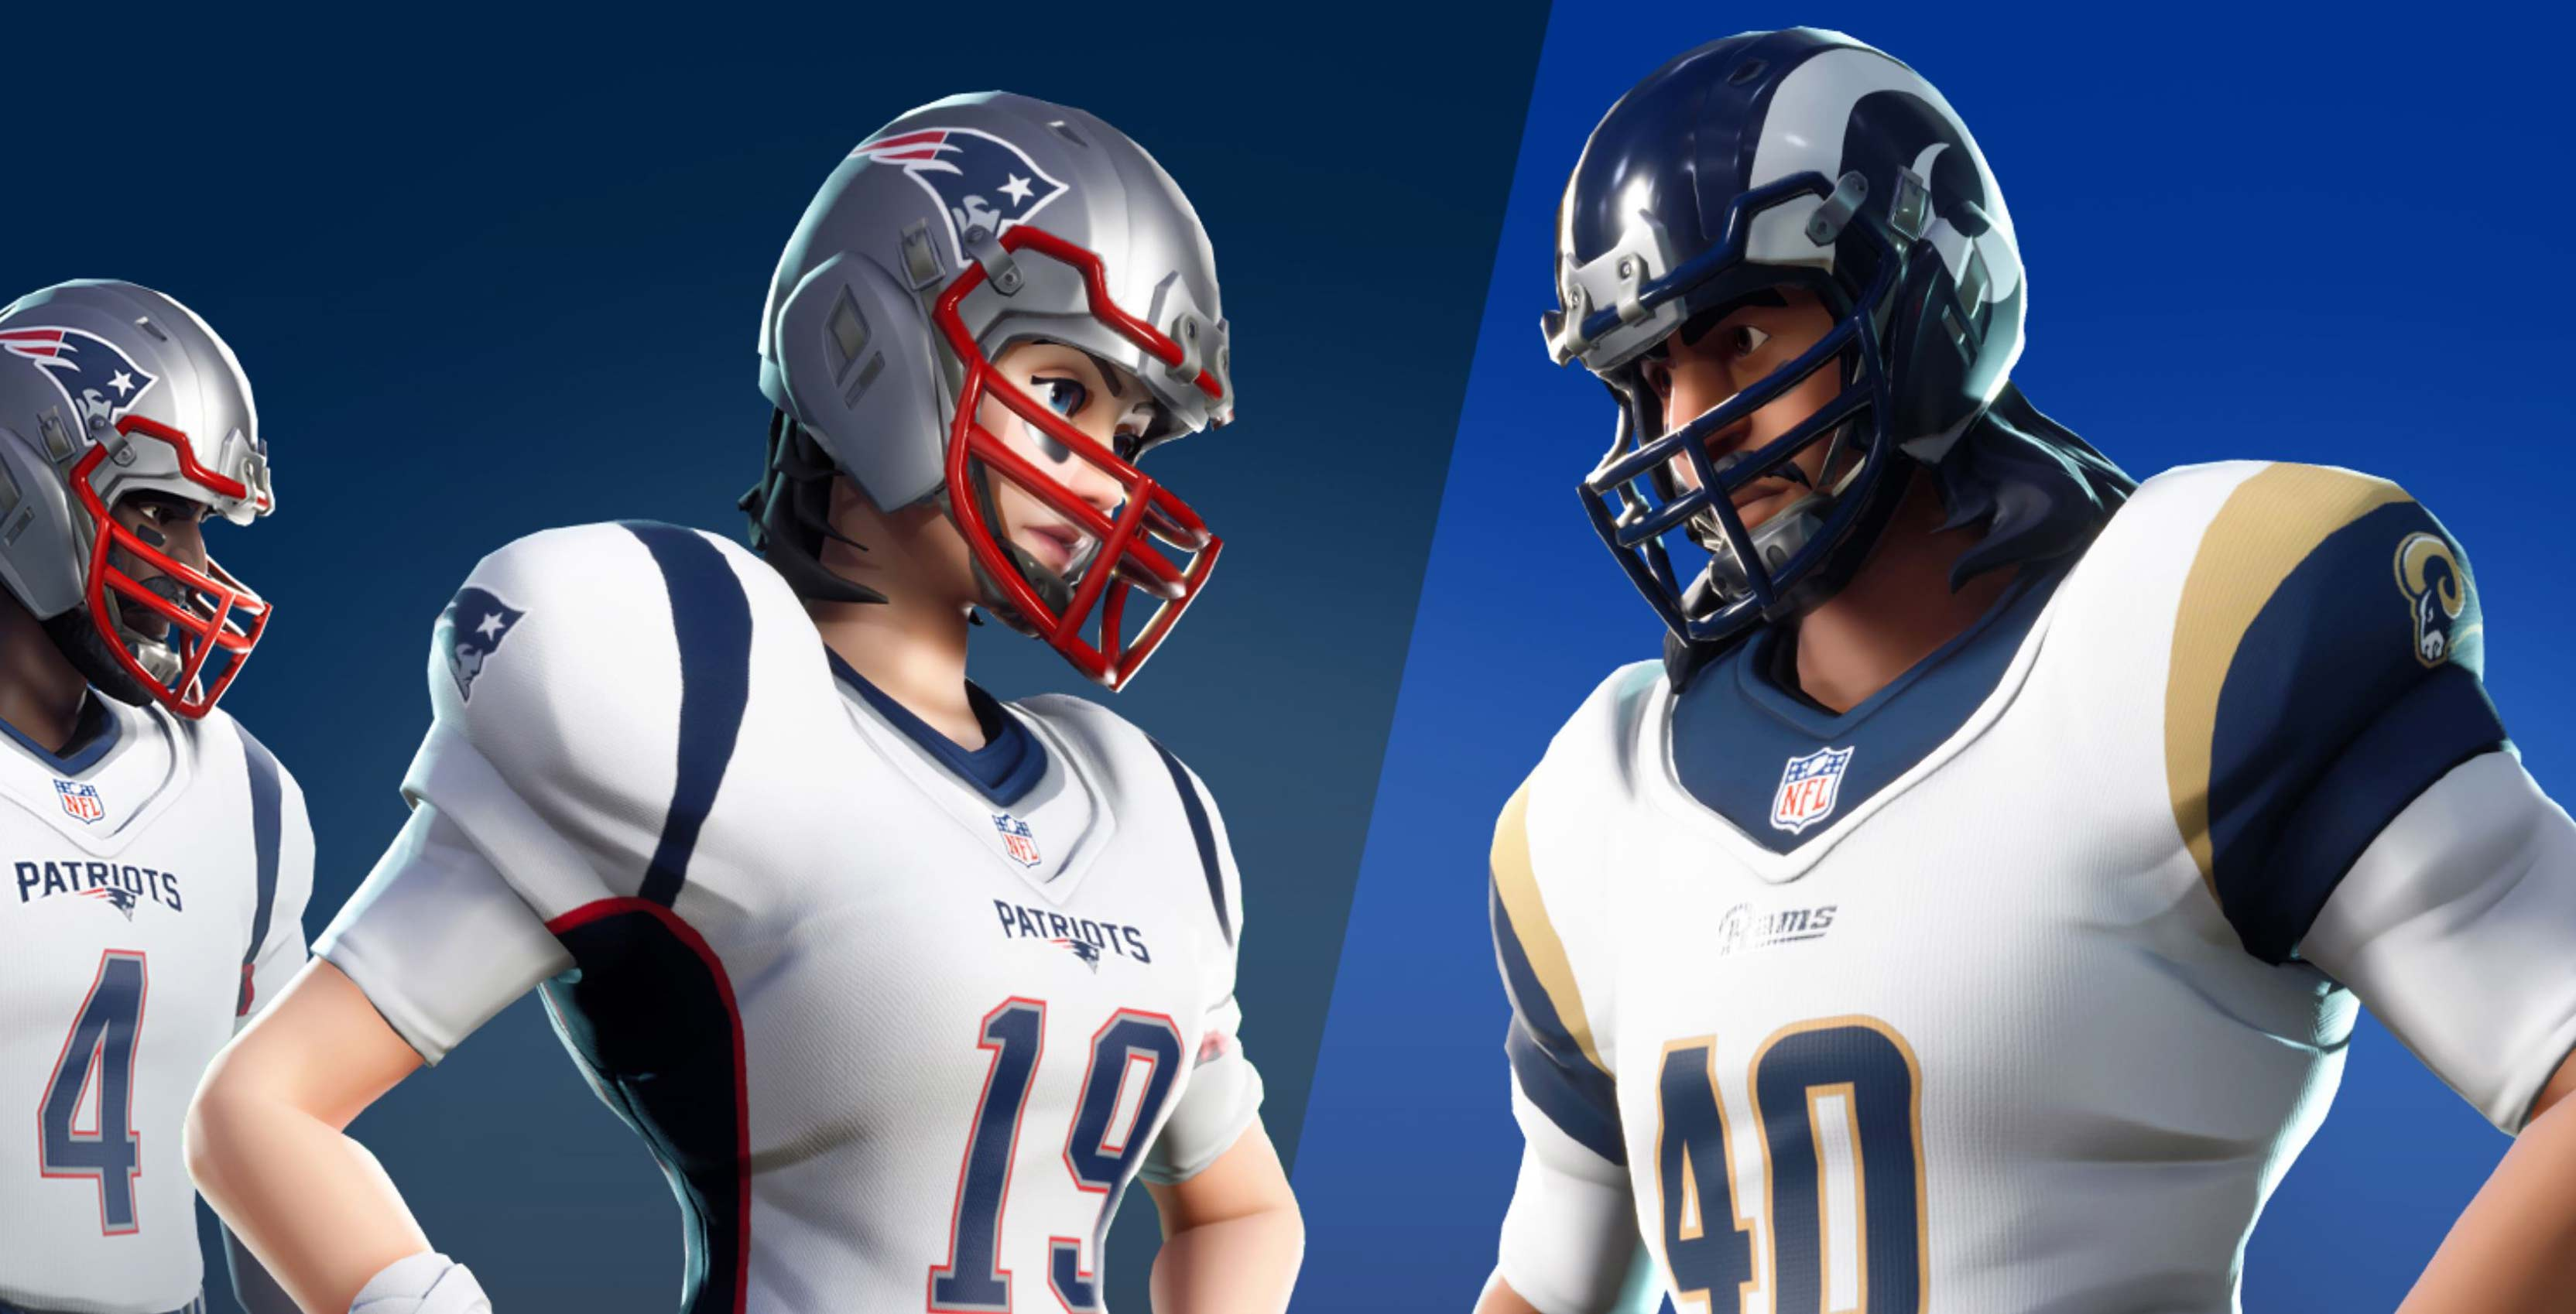 Popular battle royale game Fortnite is getting new cosmetic skins in  celebration of the National Football League s Super Bowl LIII. 783c98a83